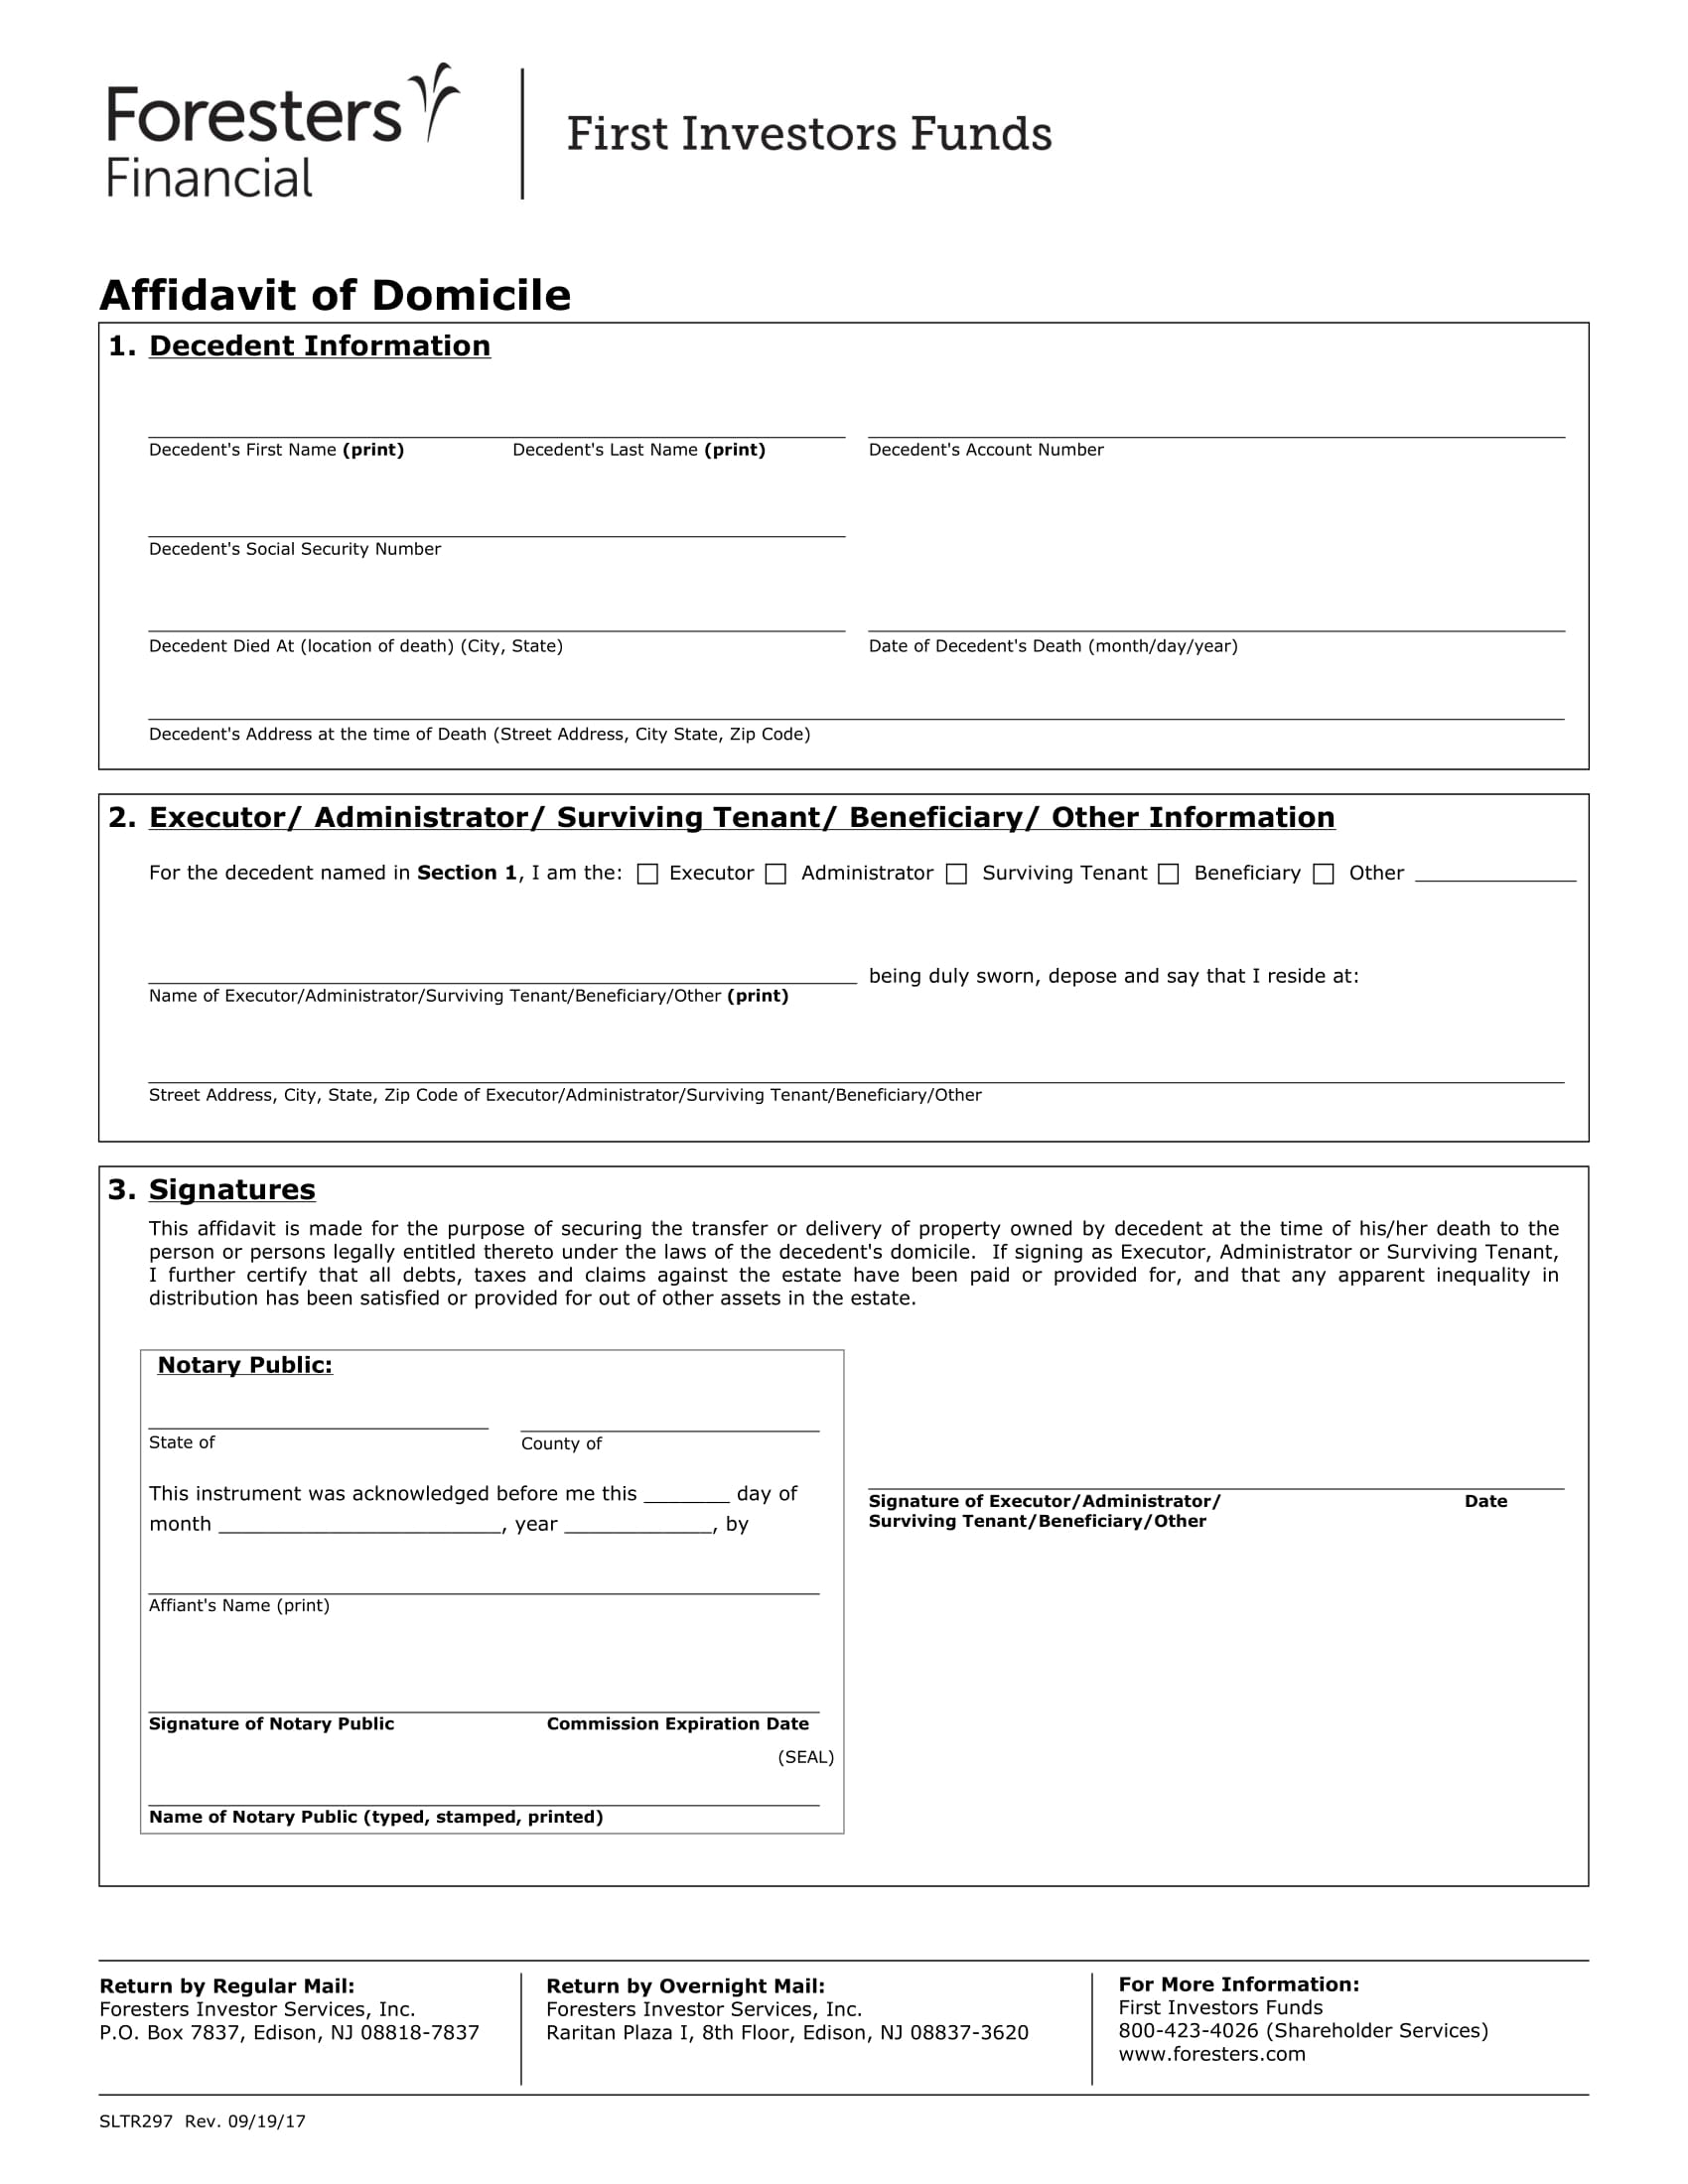 foresters financial affidavit of domicile example